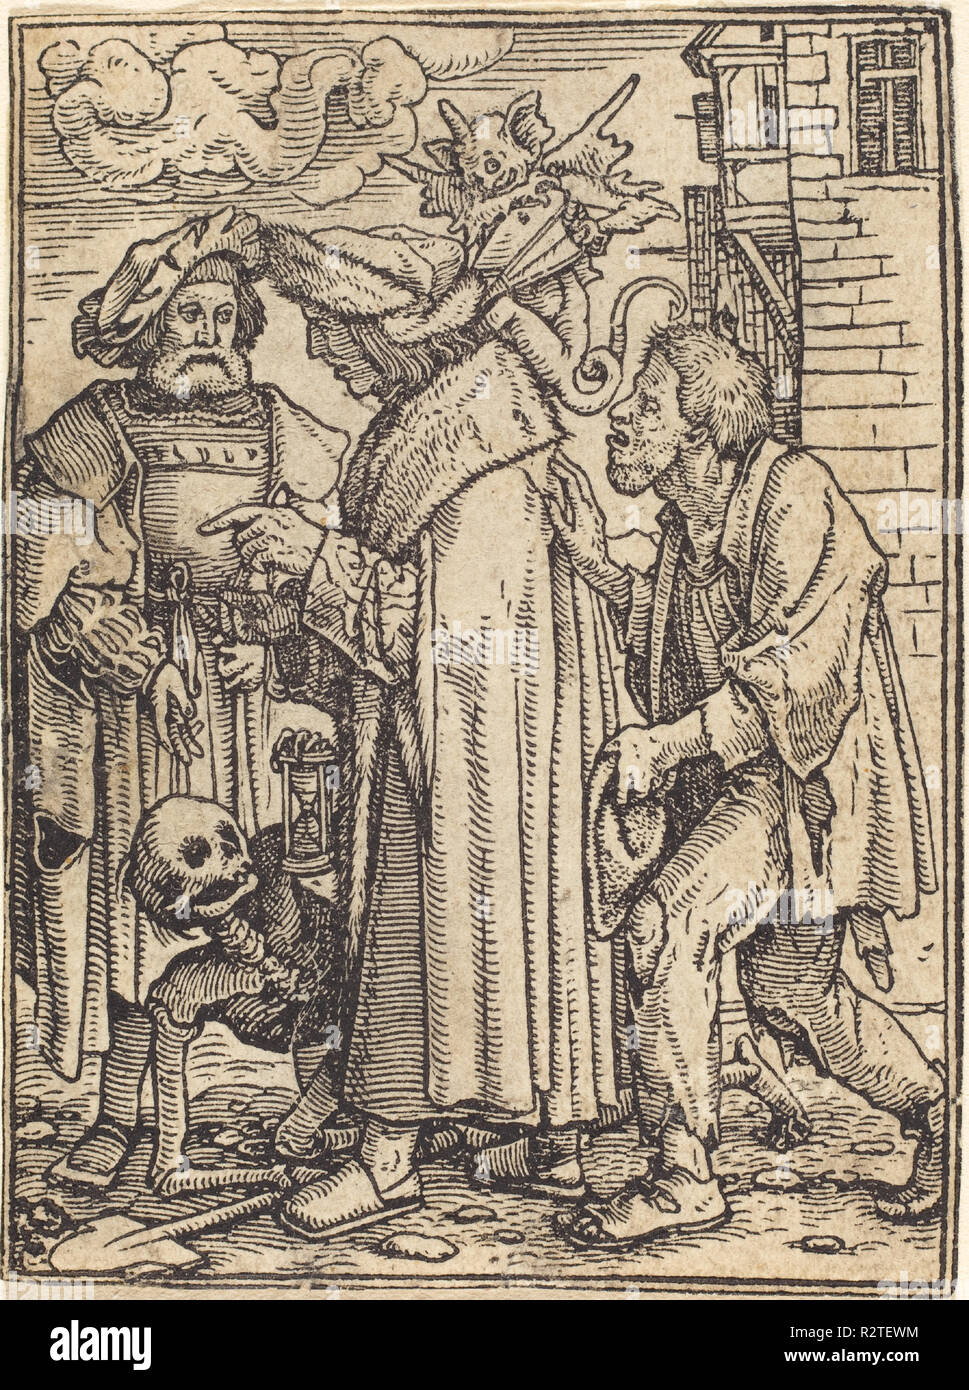 Counsellor. Medium: woodcut. Museum: National Gallery of Art, Washington DC. Author: Hans Holbein the Younger. - Stock Image